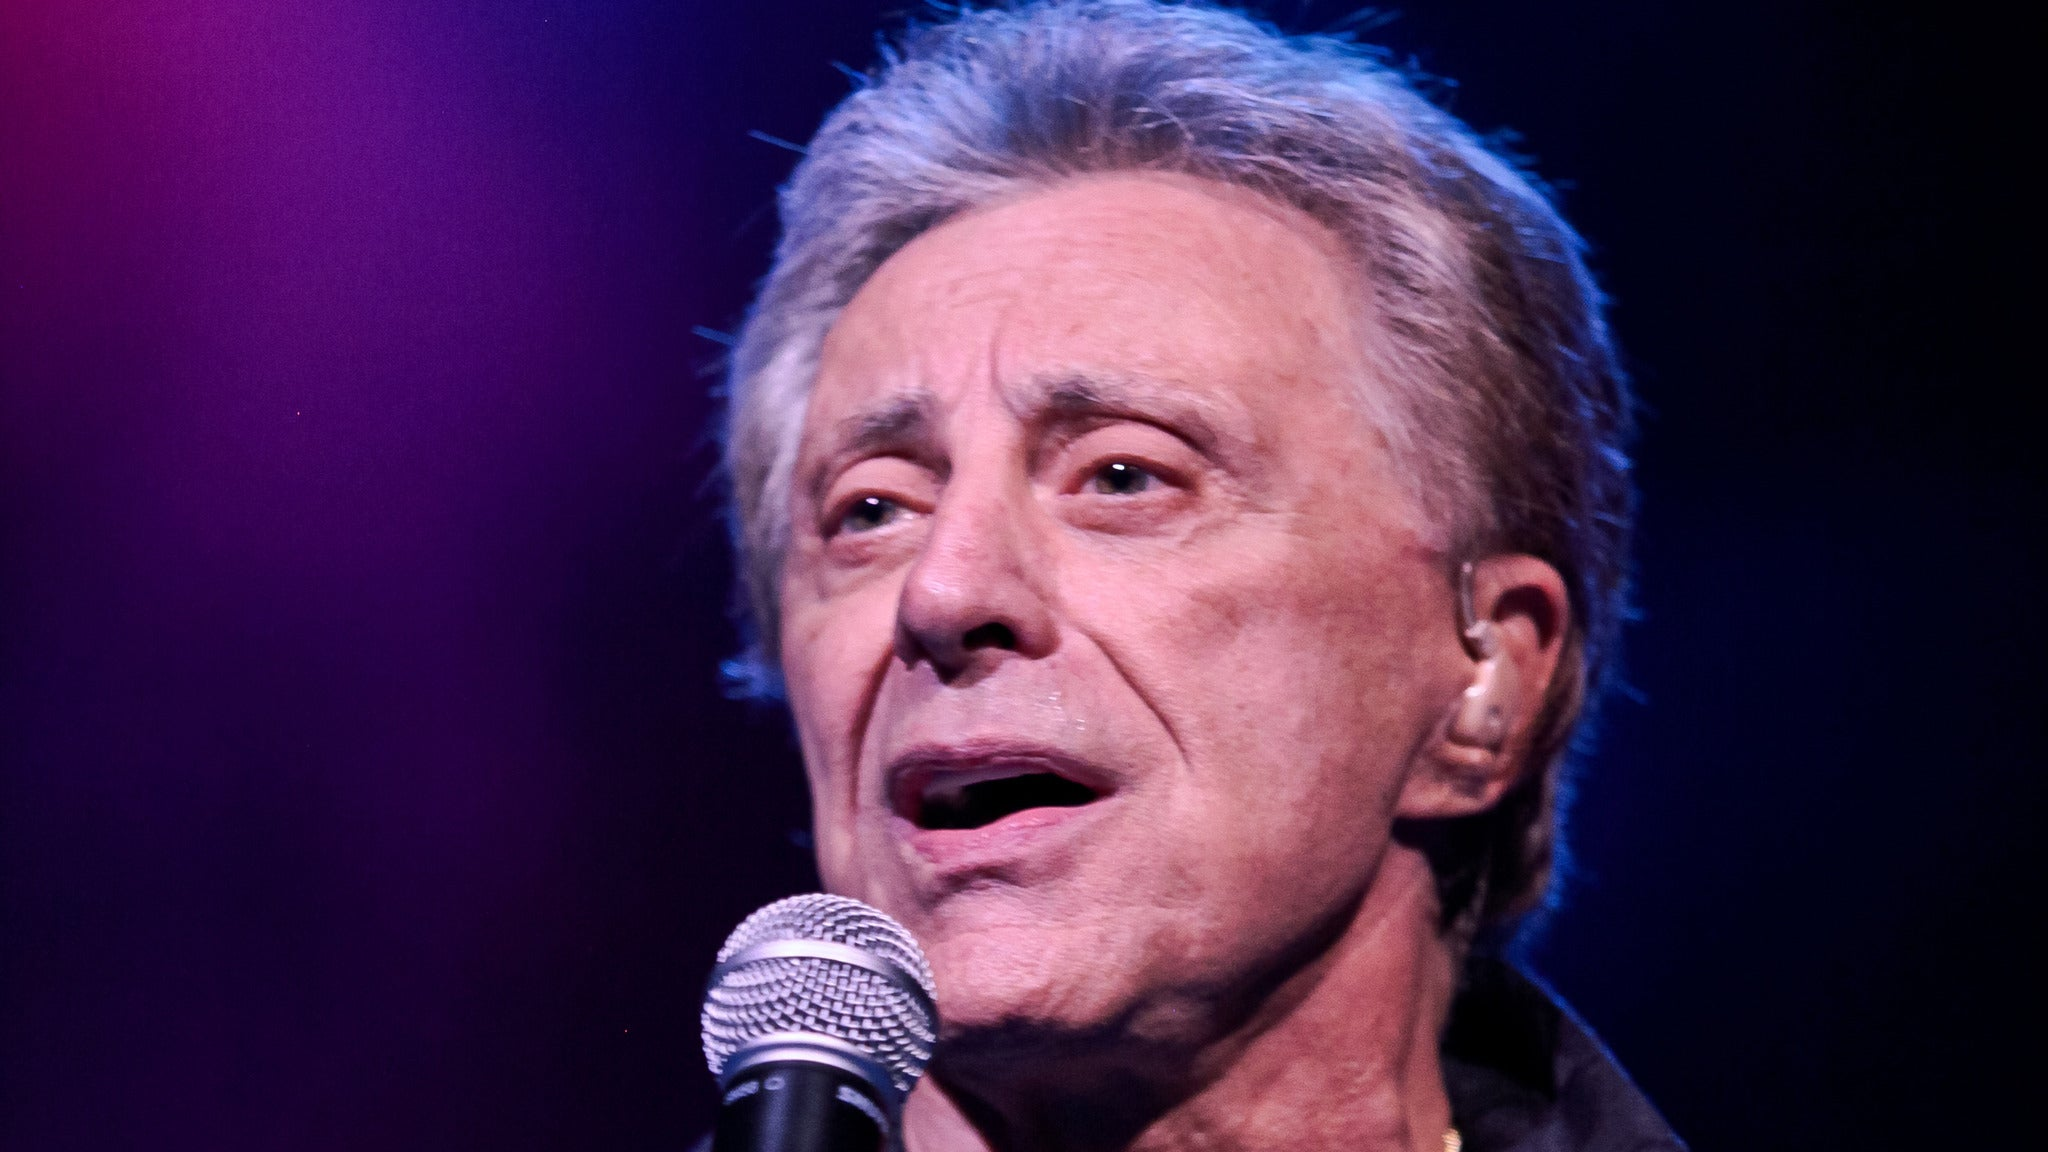 Frankie Valli & the Four Seasons at U.S. Cellular Center